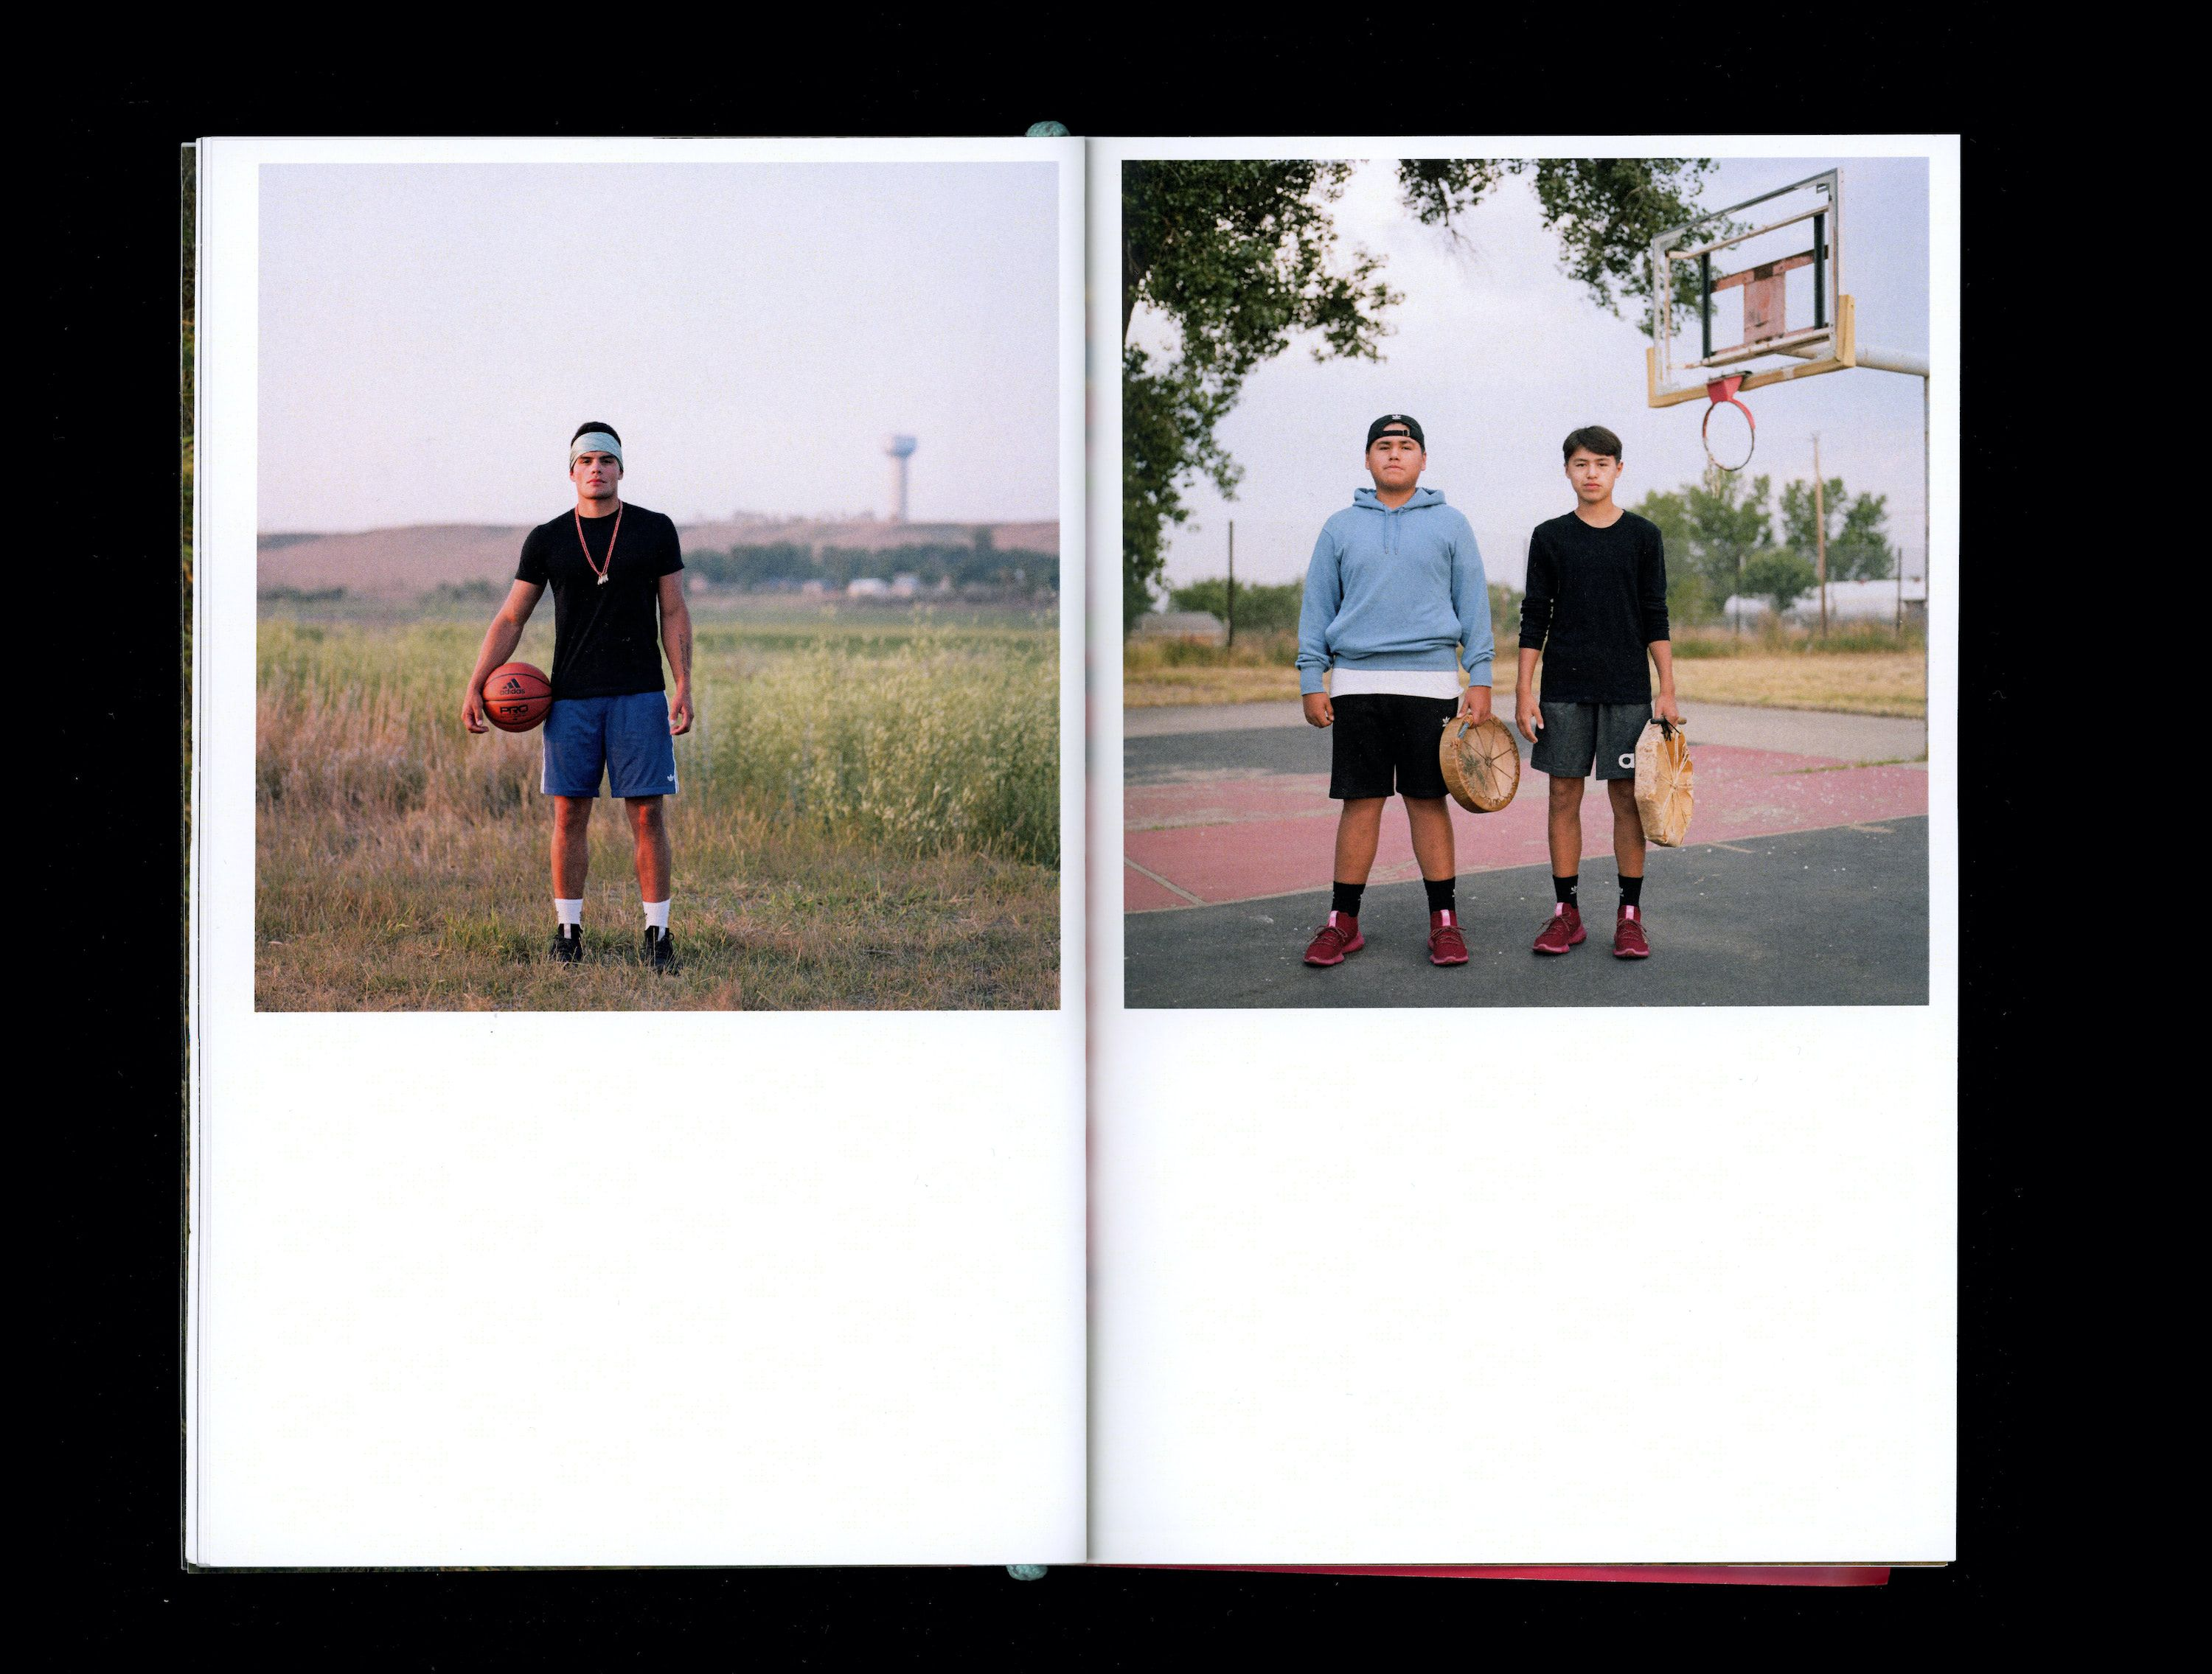 Photograph in book of Joe Jahner, Lance & George Bradley holding basketball in front of basketball pitch